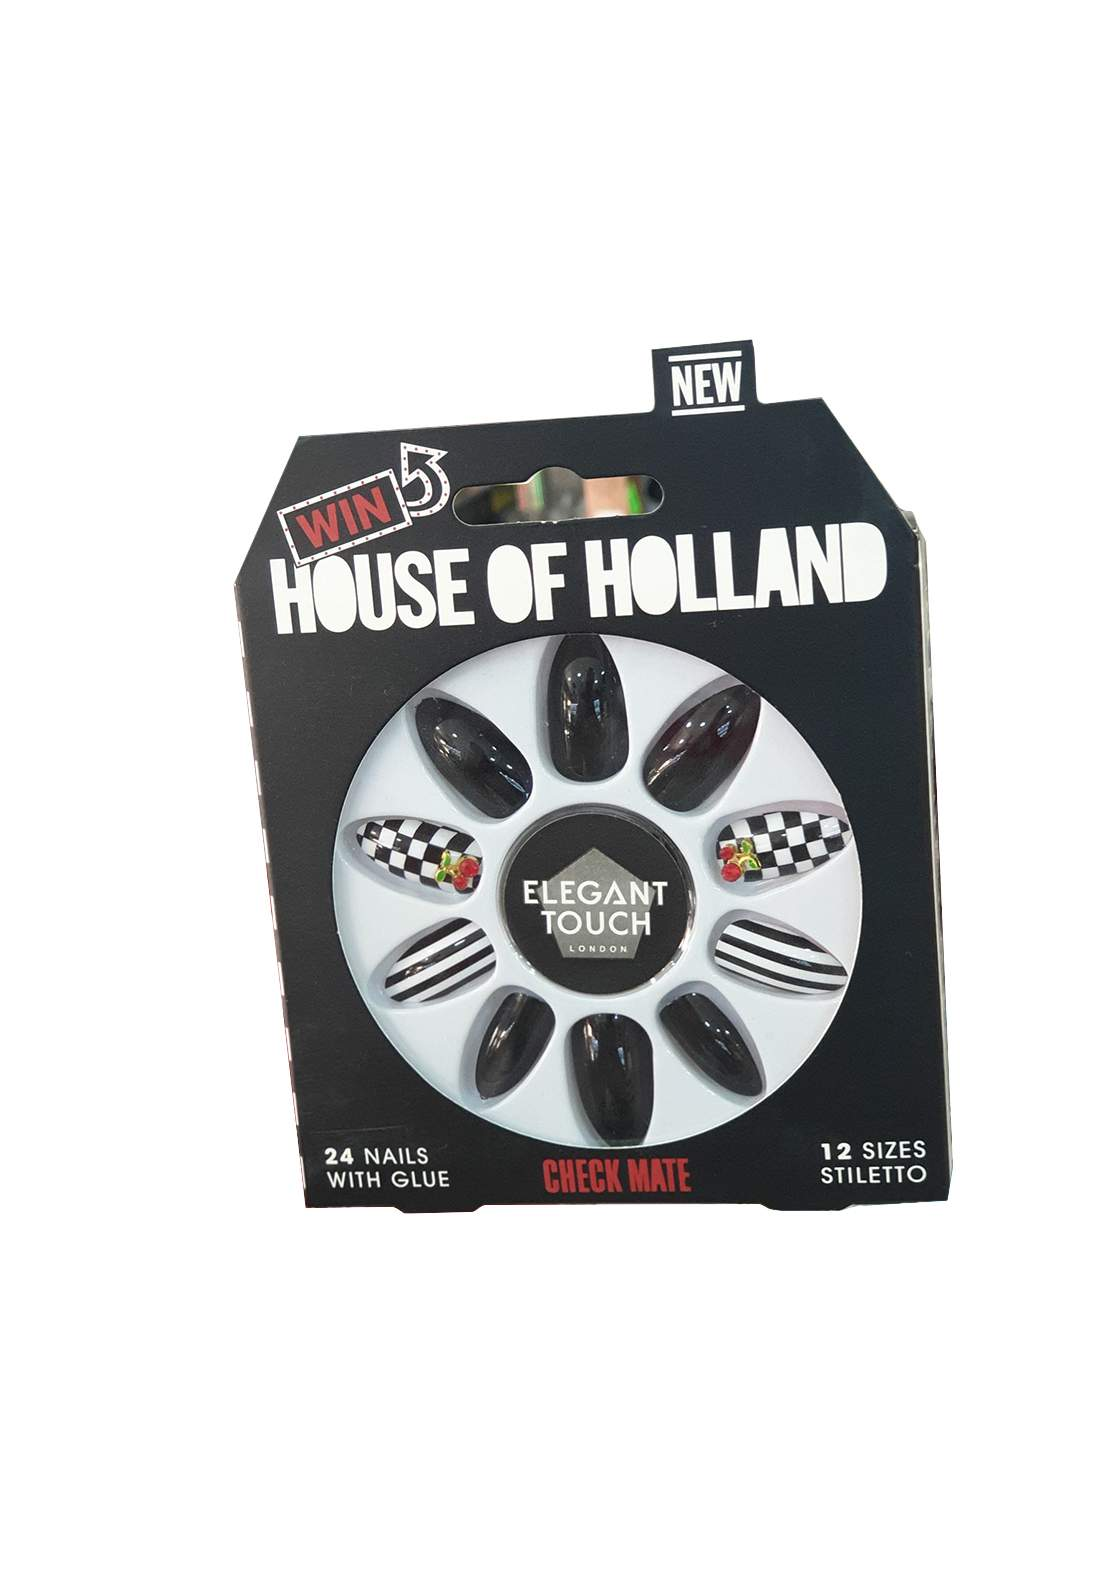 Elegant Touch House of Holland Nails Check Mate أظافر صناعية